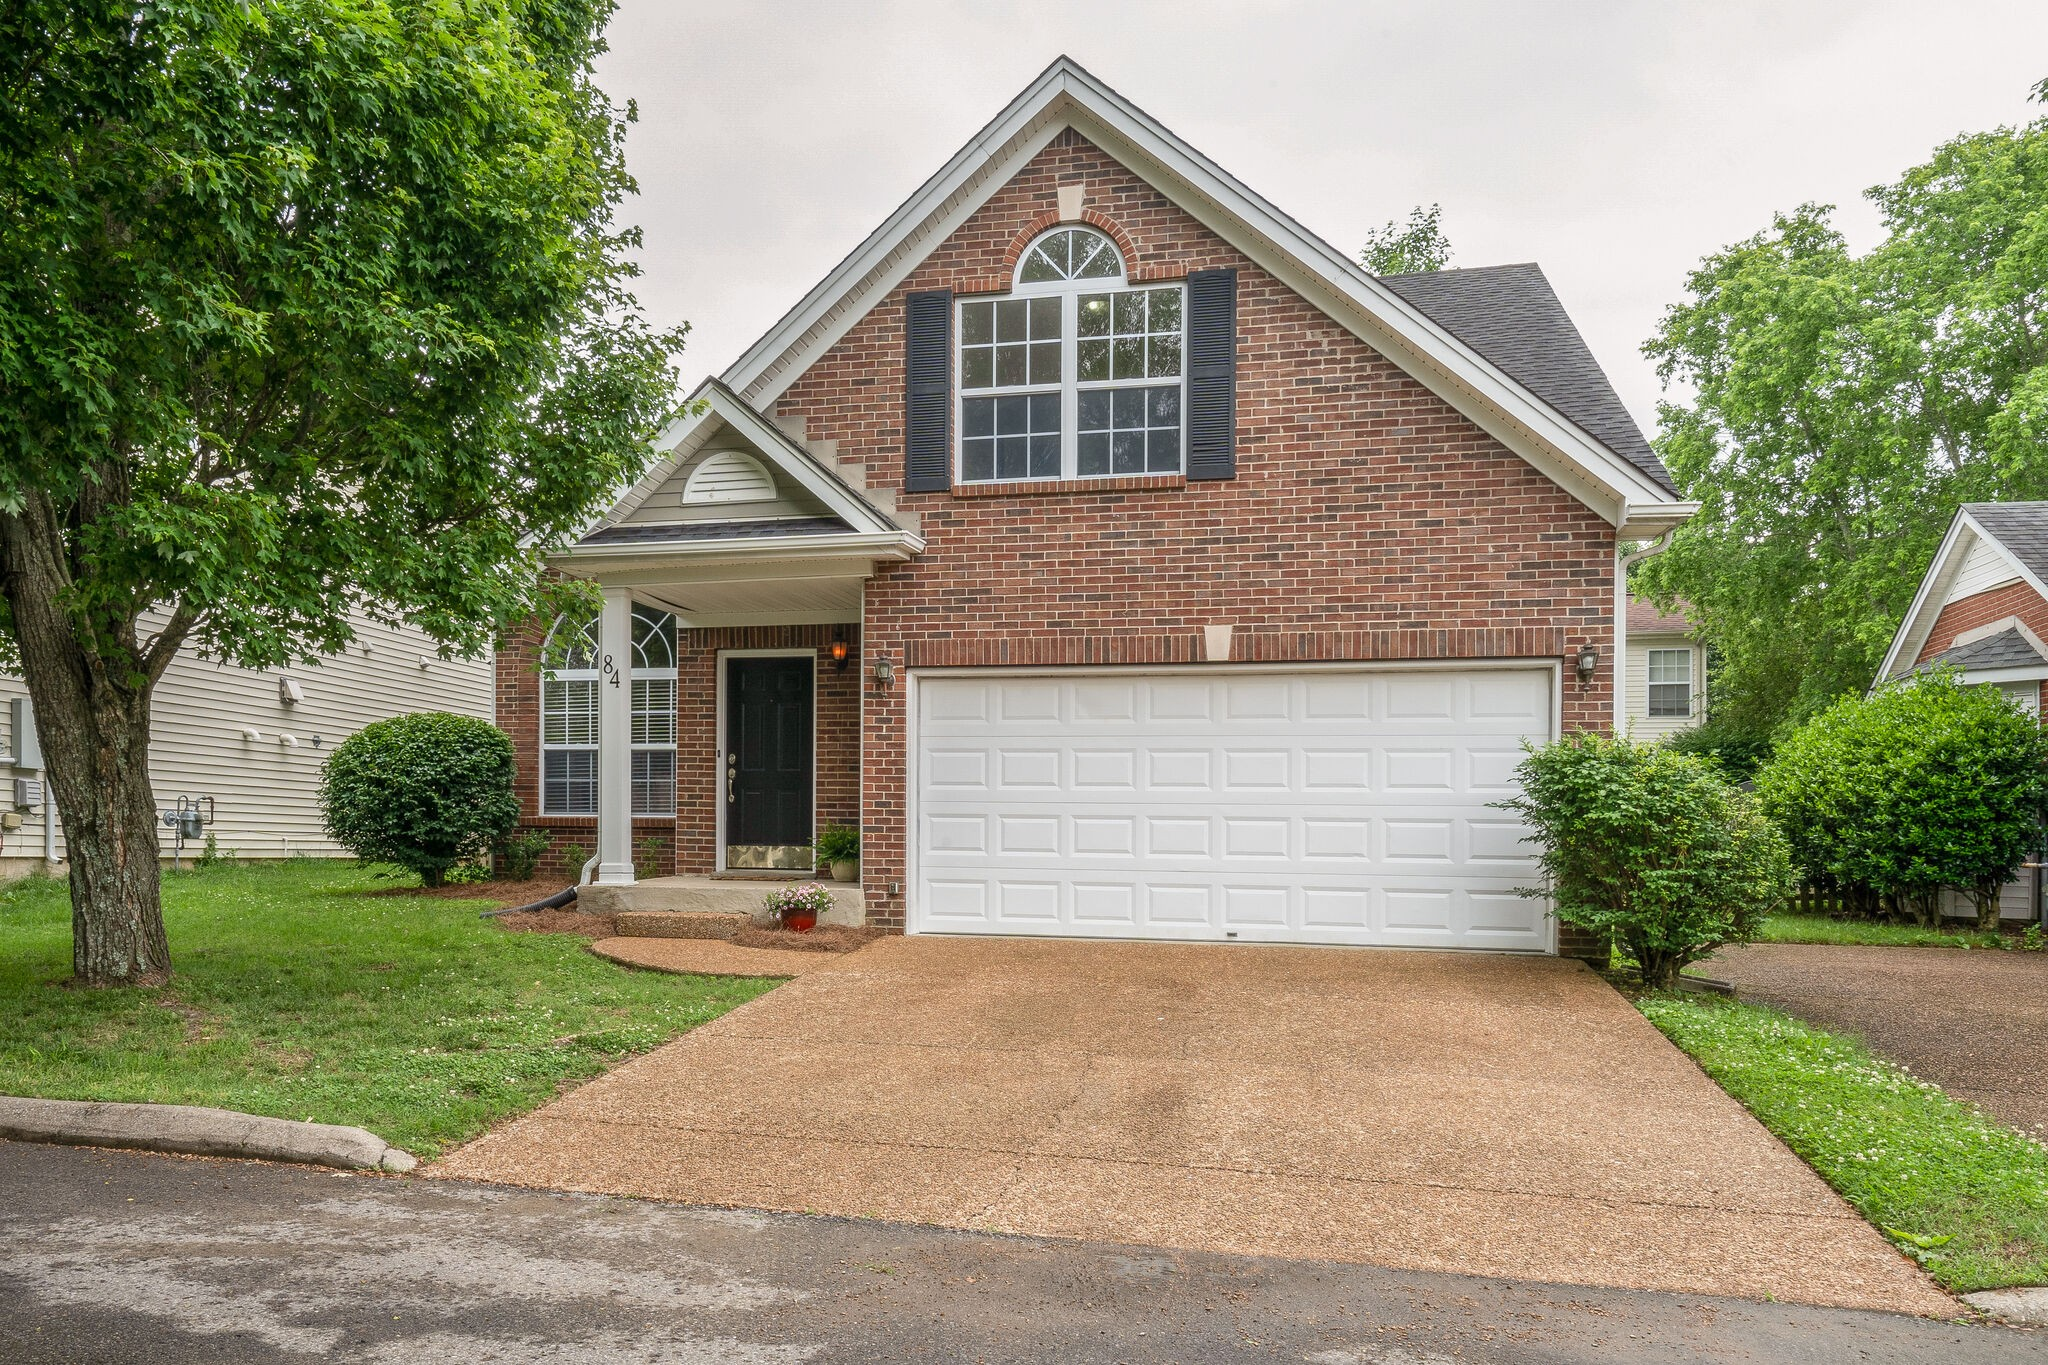 Great 2-story house in popular Fieldstone Farms located in beautiful Franklin. Nice floor plan, new paint, refinished hardwoods in kitchen & dining room. Primary bedroom down, 2 bedrooms, utility room & large bonus room up. Fenced back yard, 2-car garage, cul-de-sac location.